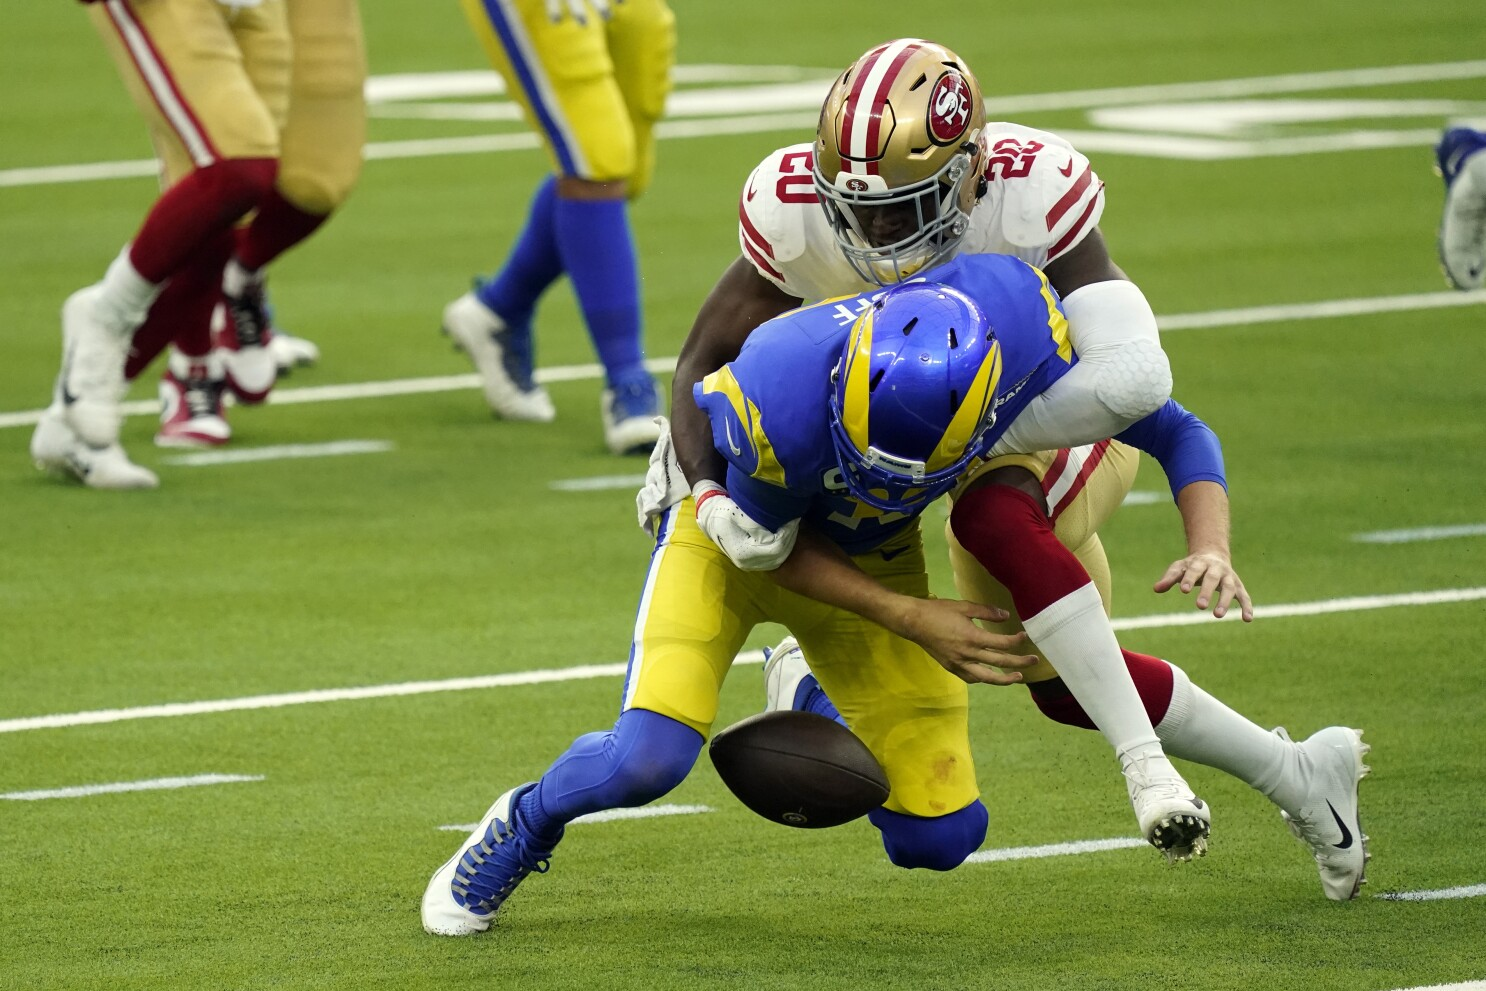 Goff S Turnovers Loom Large In Rams Loss To 49ers The San Diego Union Tribune